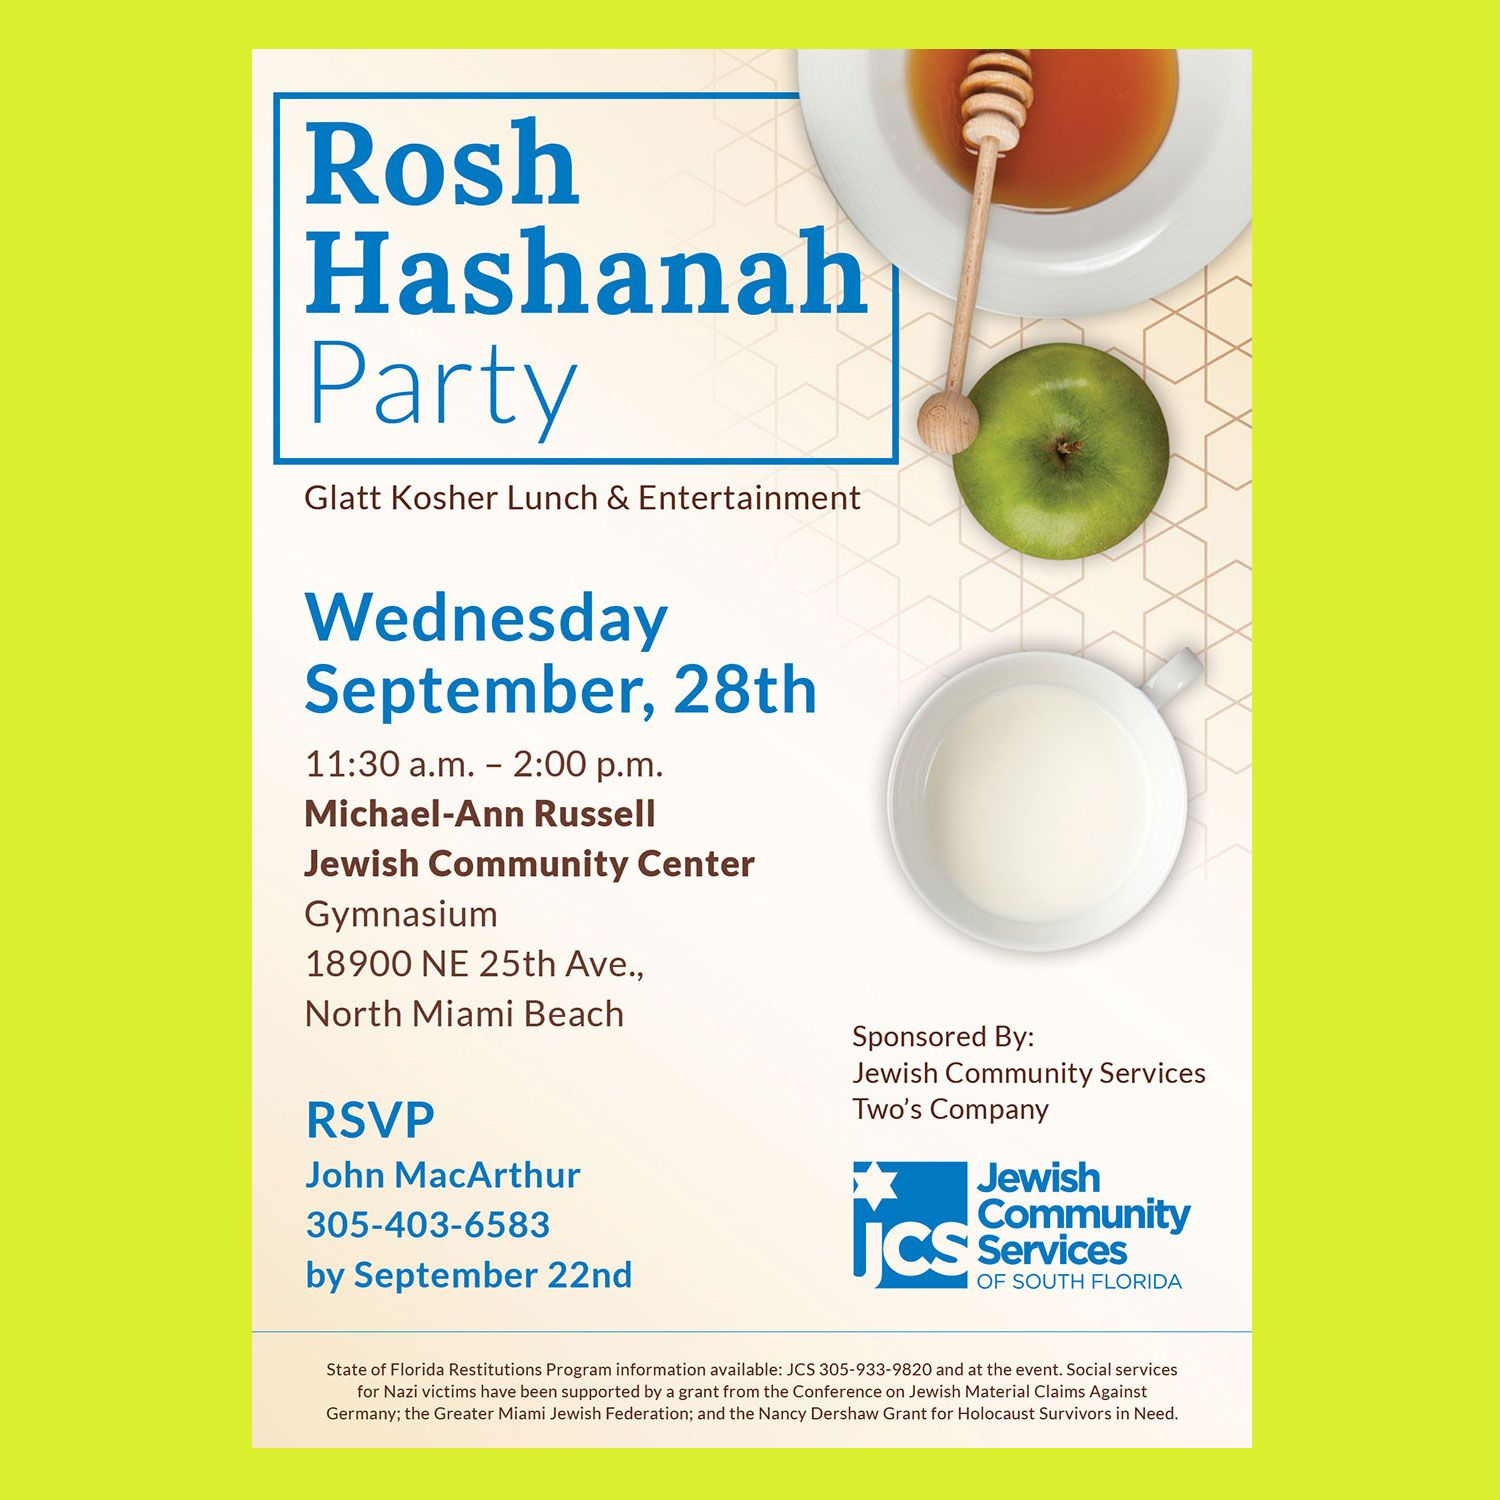 Party chic rosh hashanah luncheon party invitation